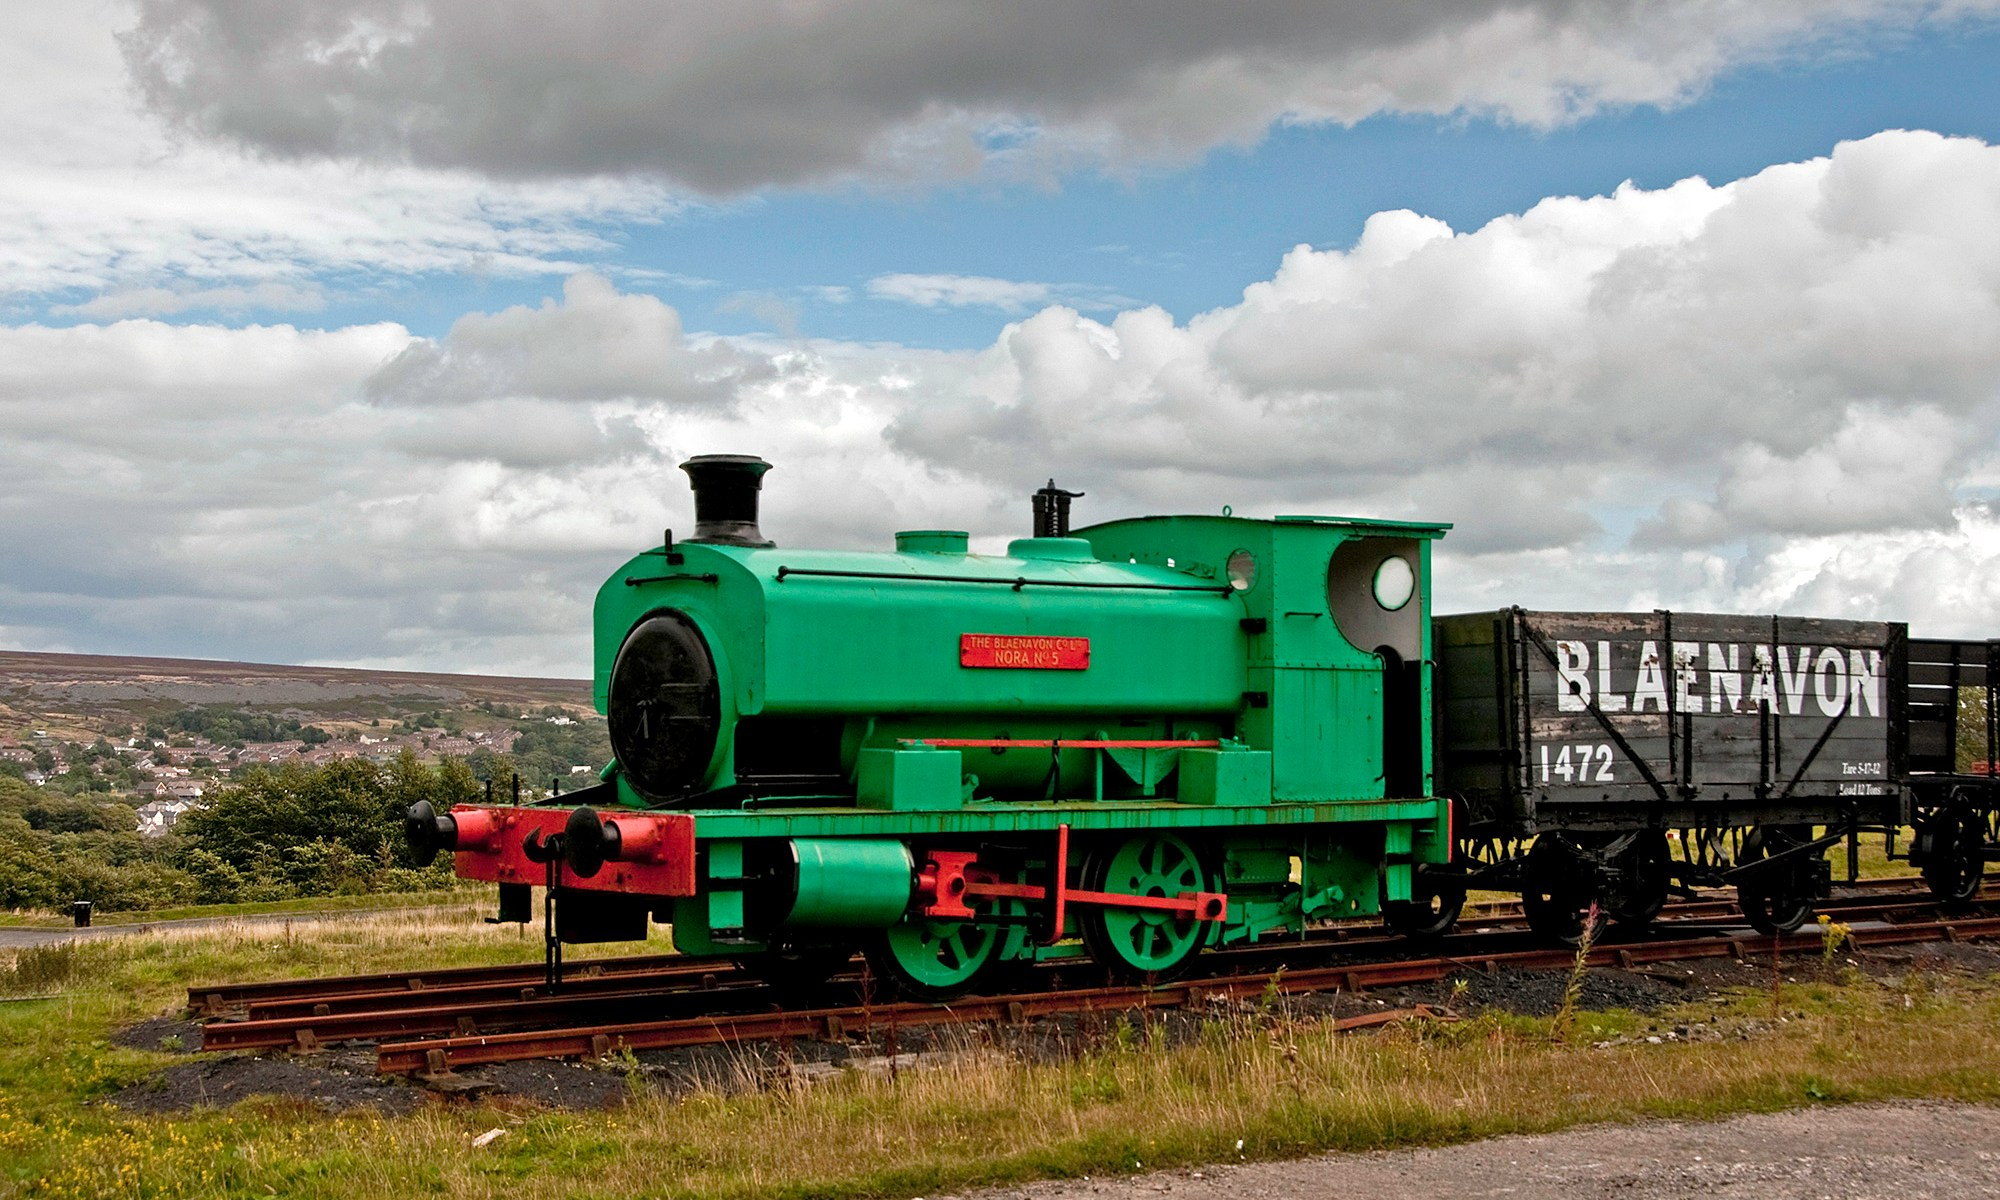 Nora 5 Engine at Blaenavon